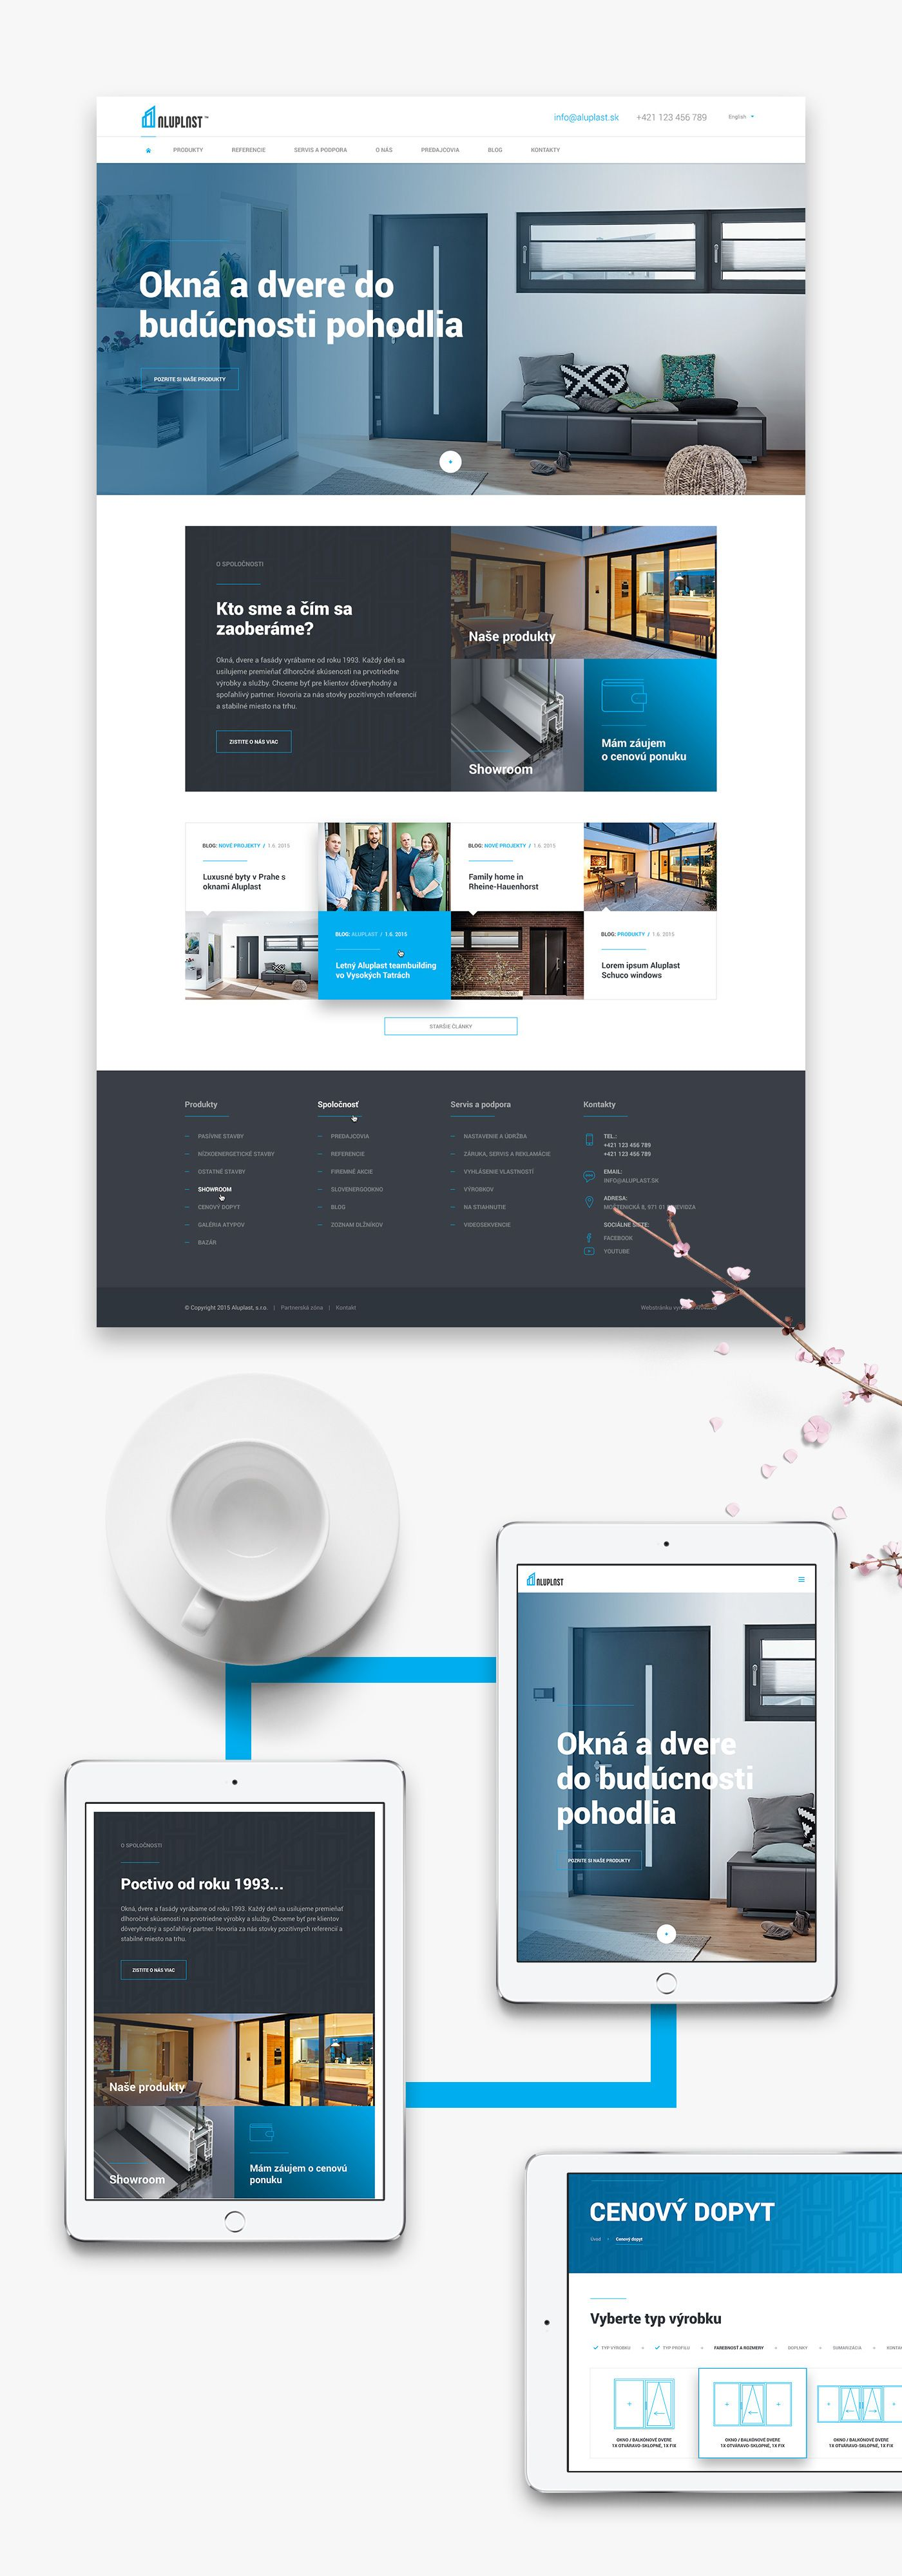 Showcase And Discover Creative Work On The World S Leading Online Platform For Creative Indust Business Web Design Web Design Inspiration Minimalist Web Design